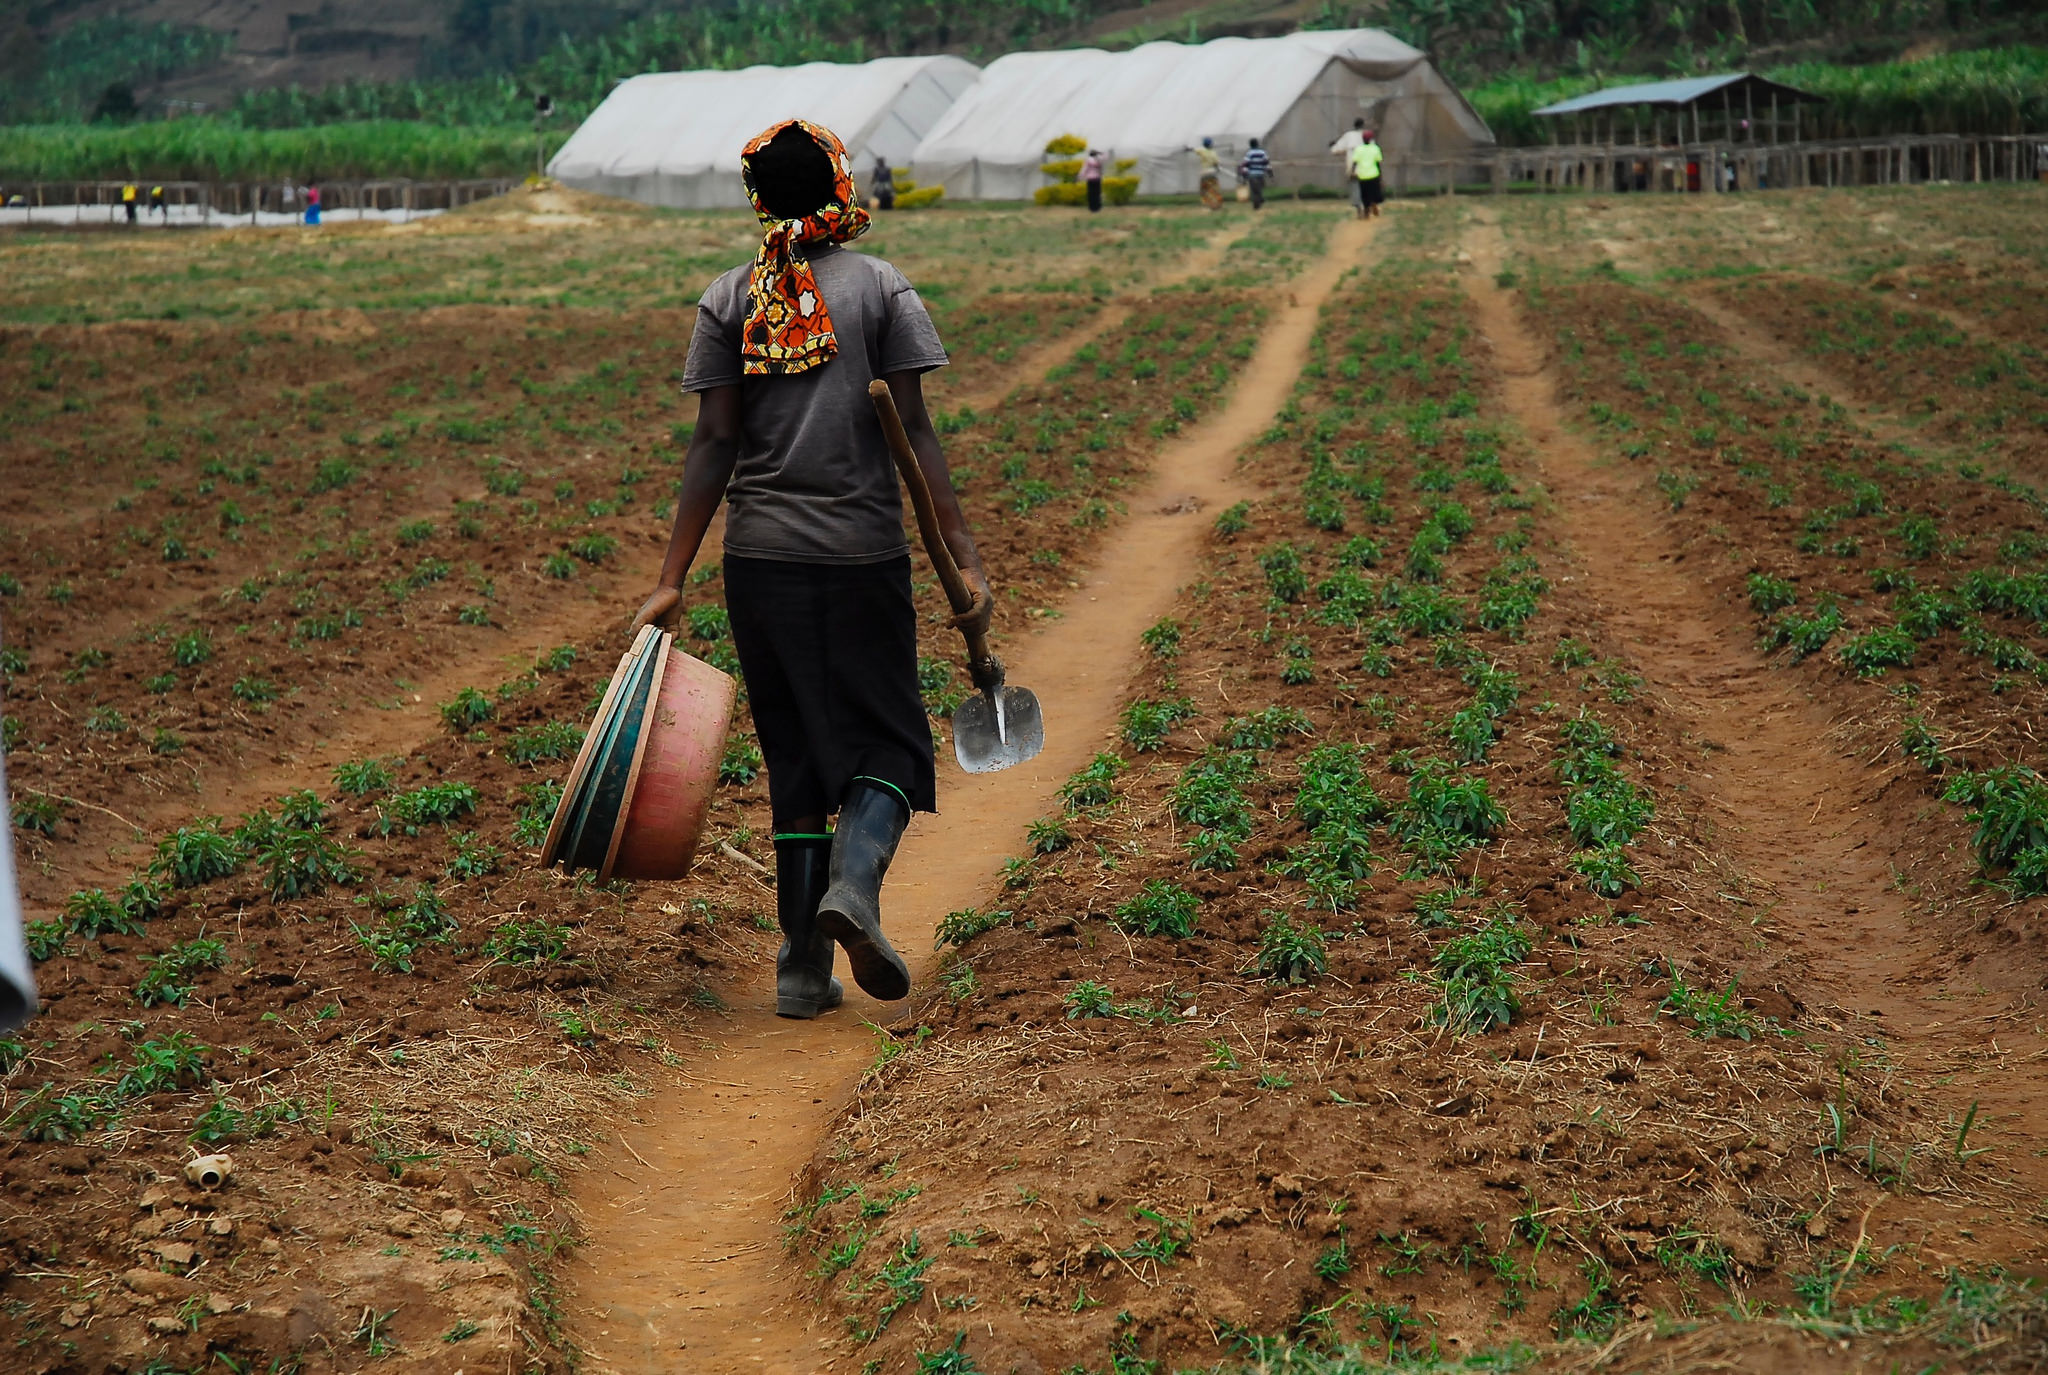 Sustaining the future of agriculture in the land of a thousand hills